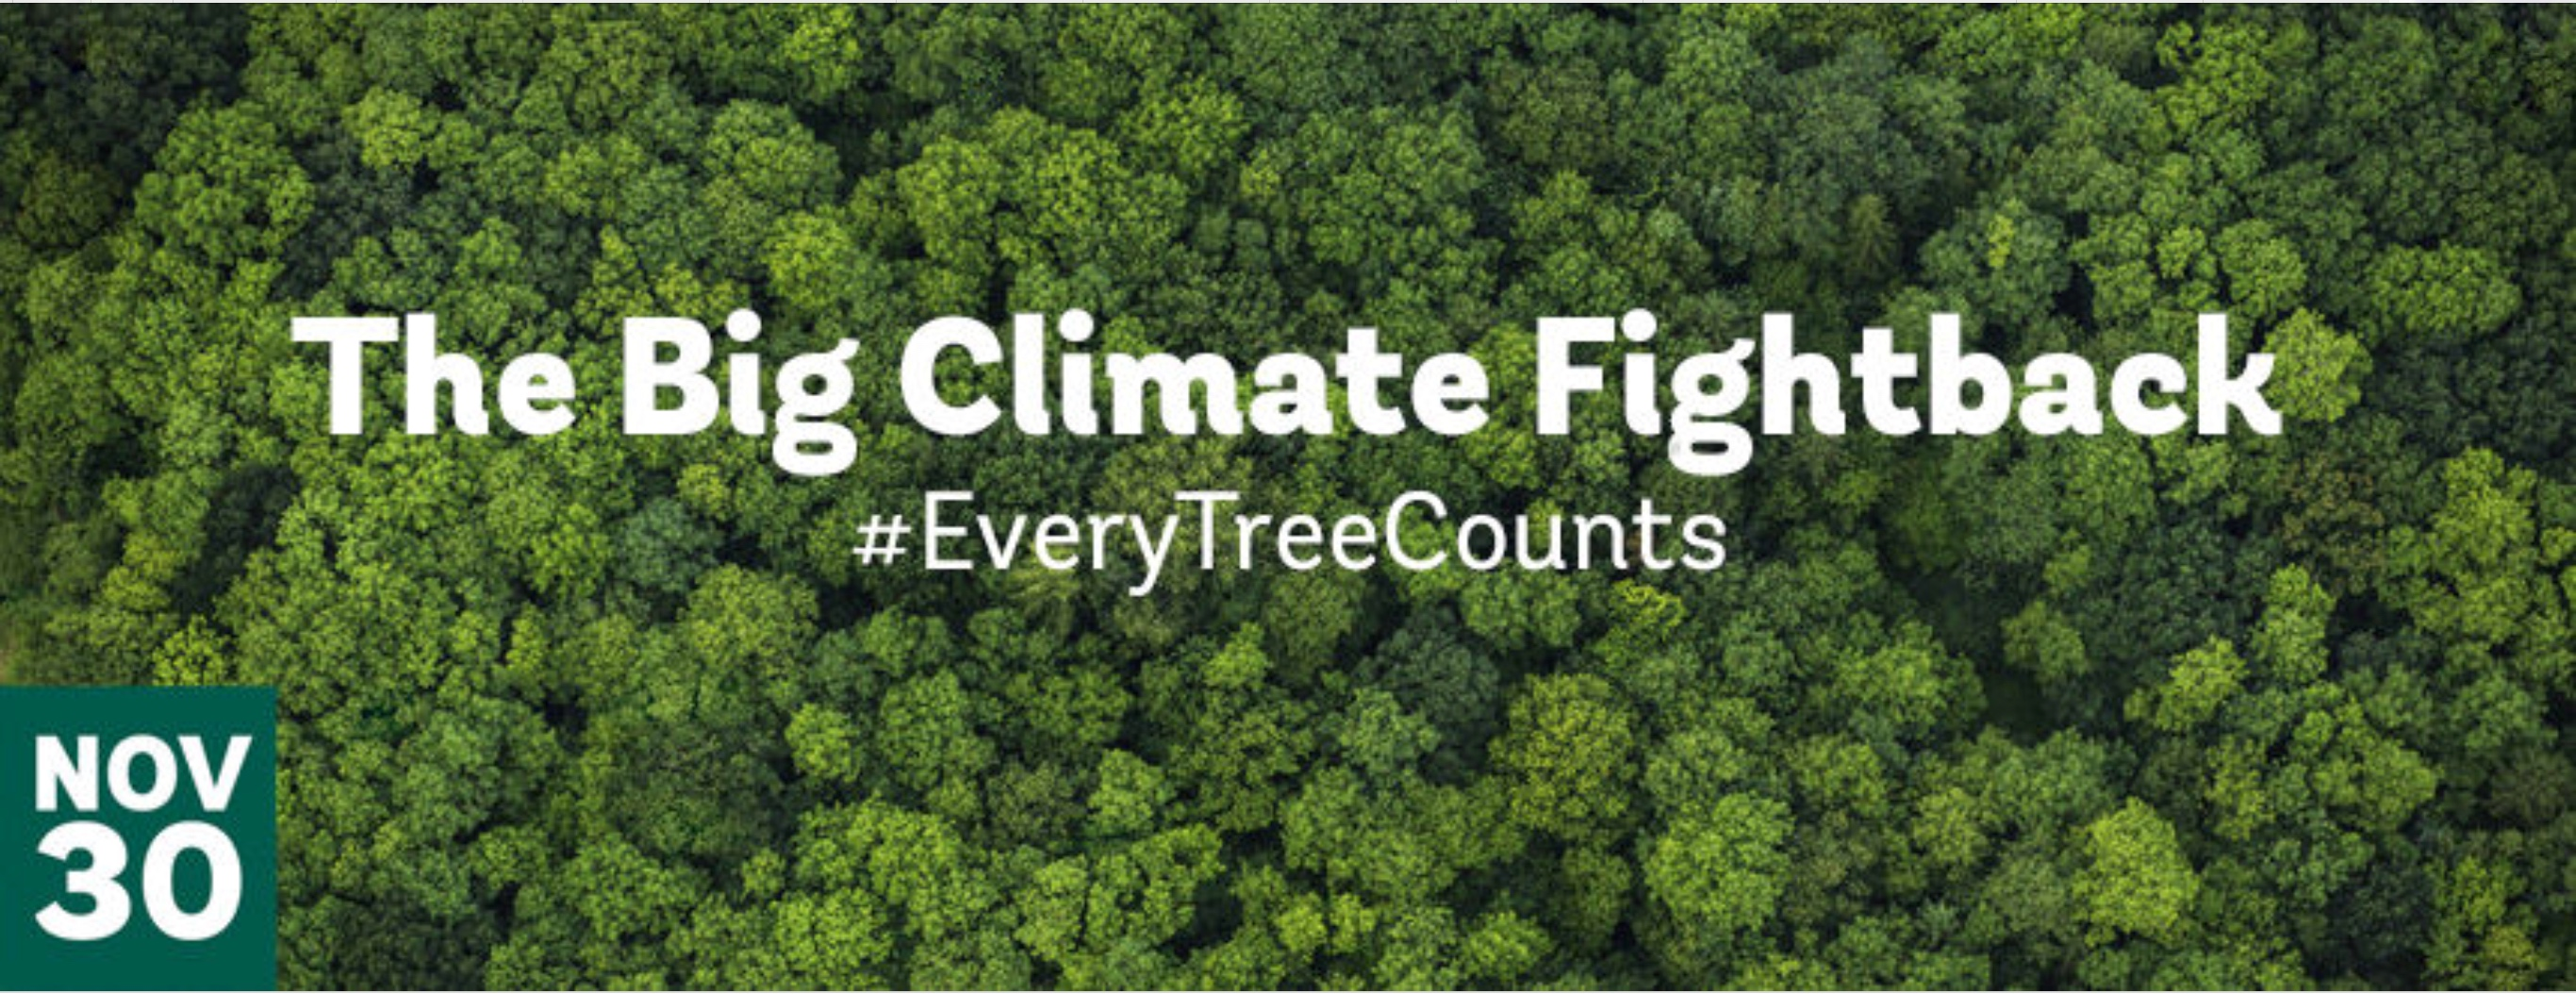 Help me support 1 million people in UK's largest mass tree planting campaign